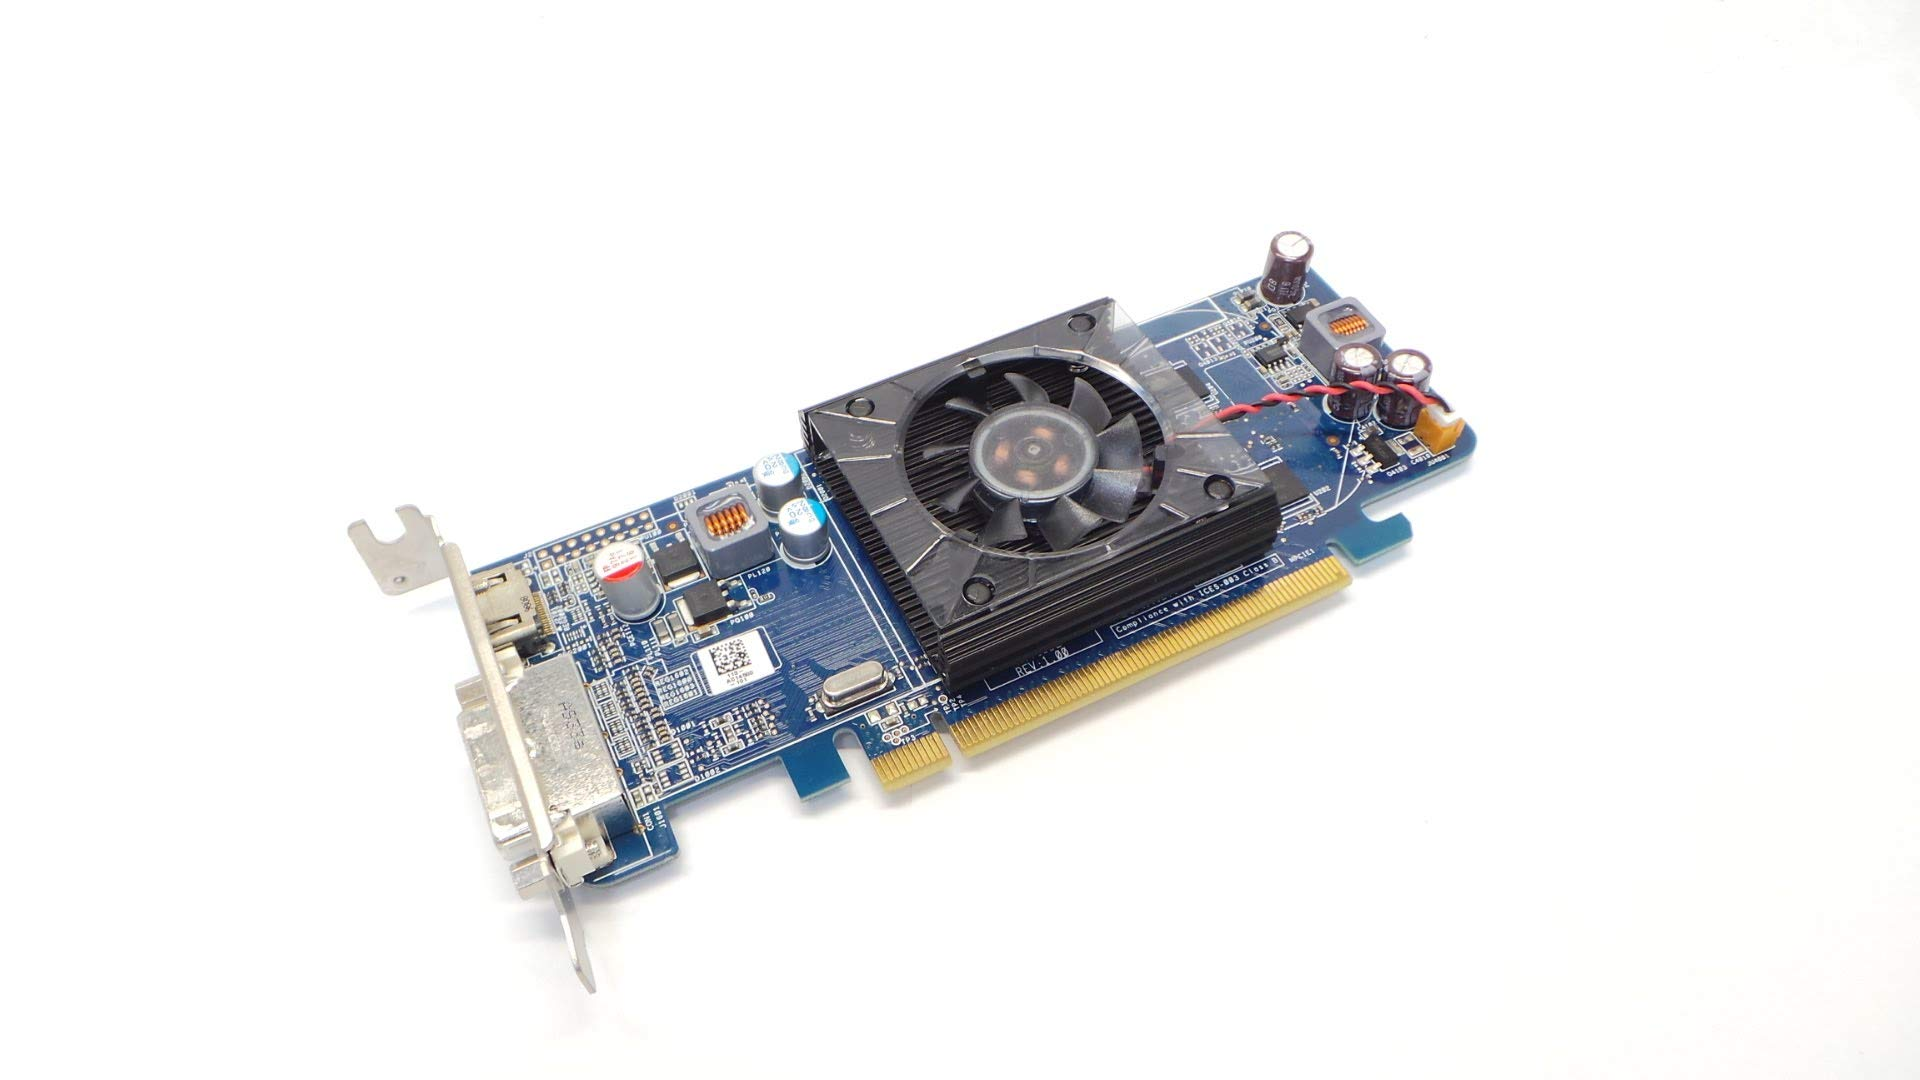 Red Planet Radeon HD 4350 Low Profile Video Card 512MB Compatible with Dell P003P. ATI AMD DVI + HDMI PCI Express x16 Graphic Card. Replaces D/PN Part Numbers: P003P 0P003P